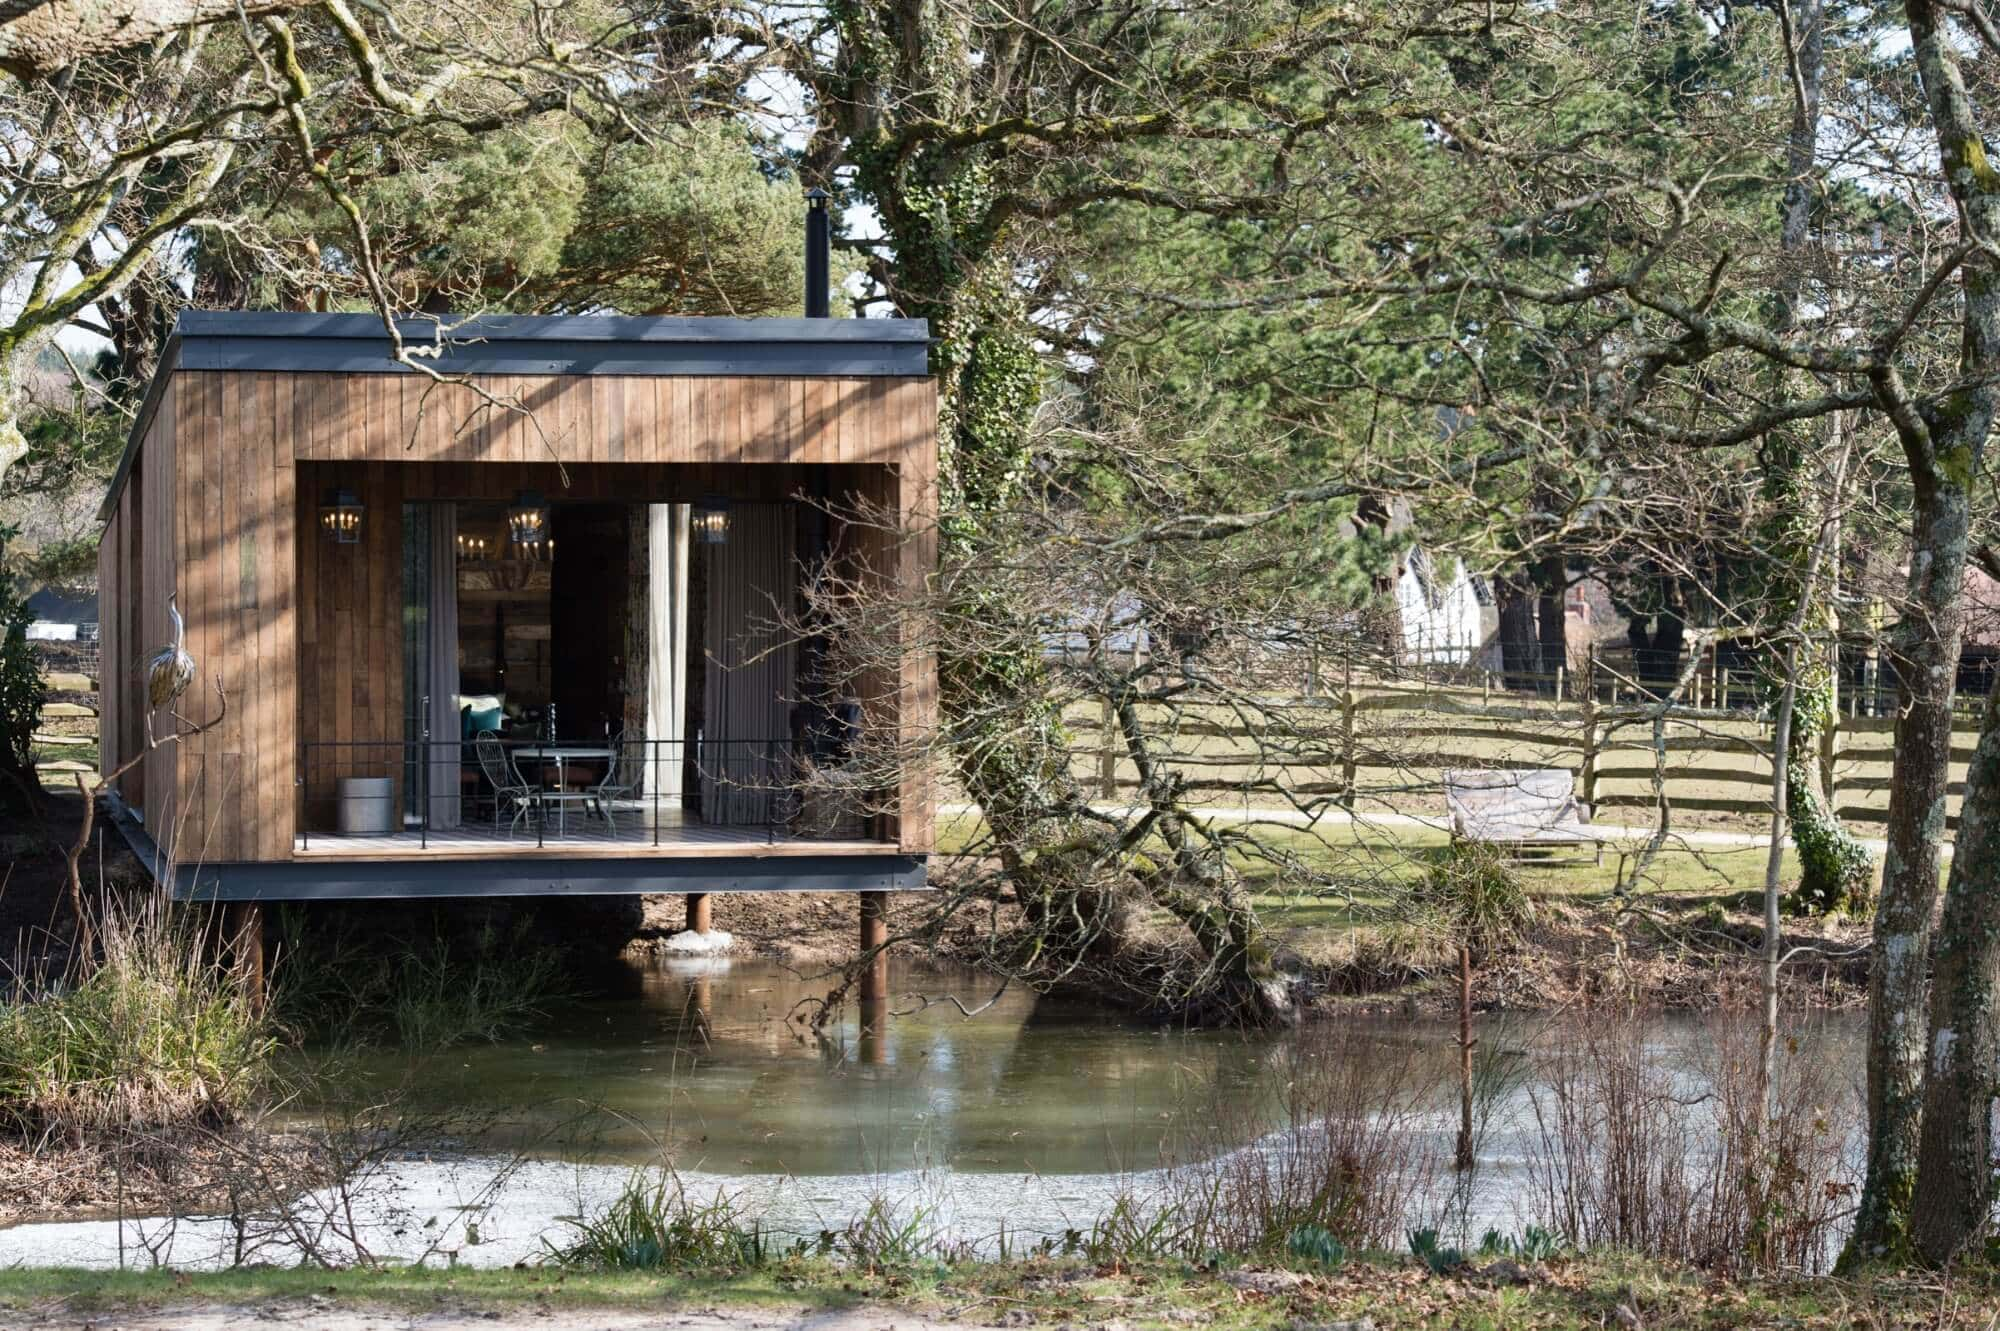 Lake Cabin at Lime Wood, England - Photo by Amy Murrell